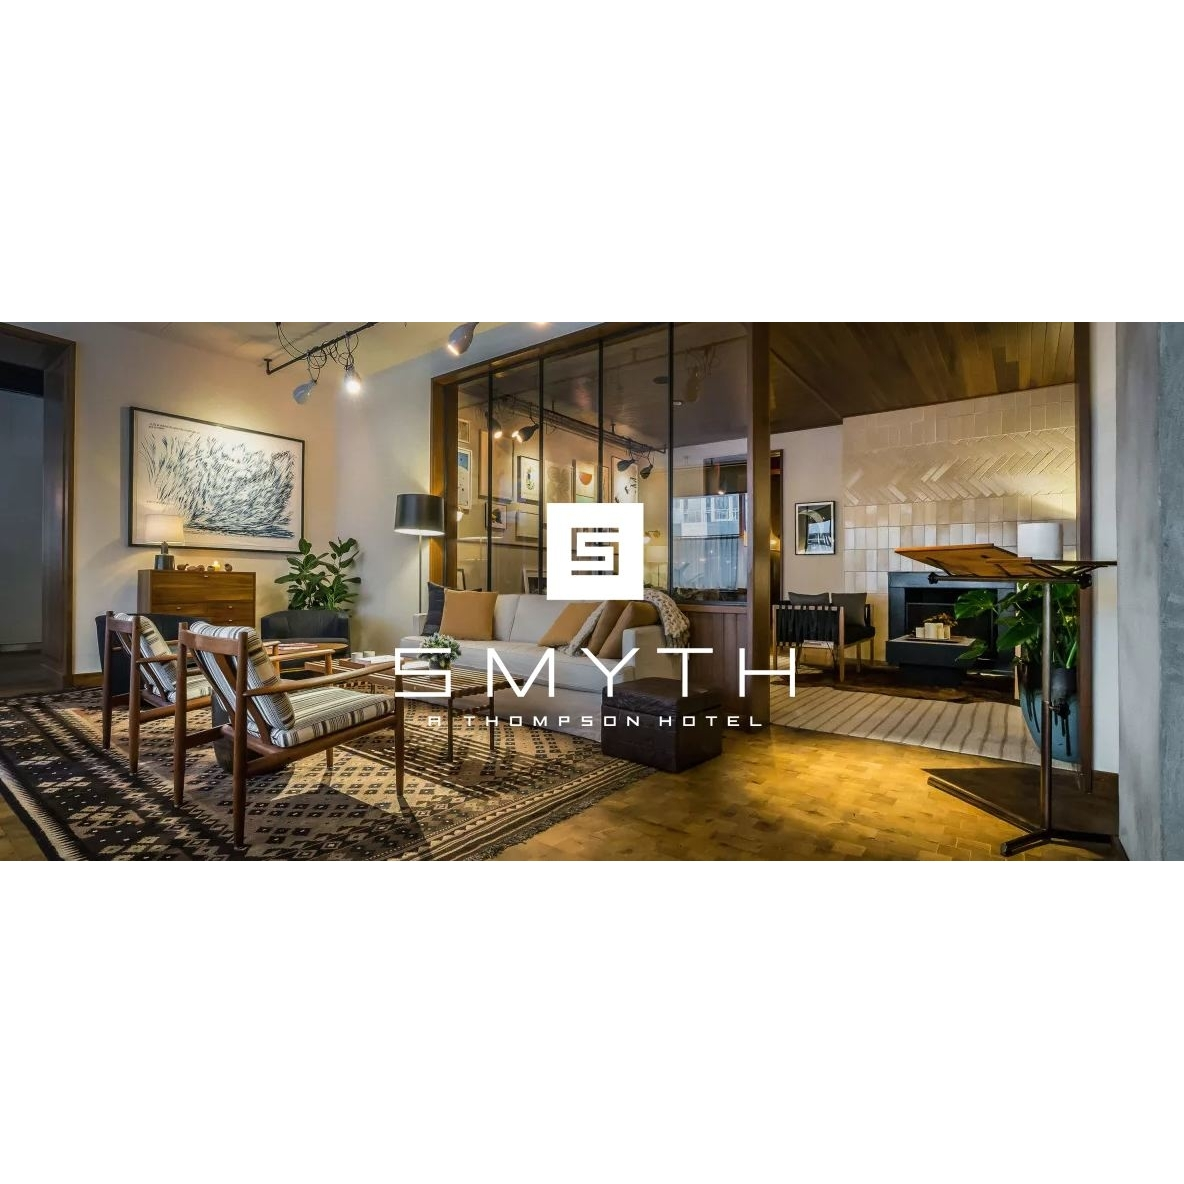 Smyth a thompson hotel coupons near me in new york 8coupons for Modern hotels near me